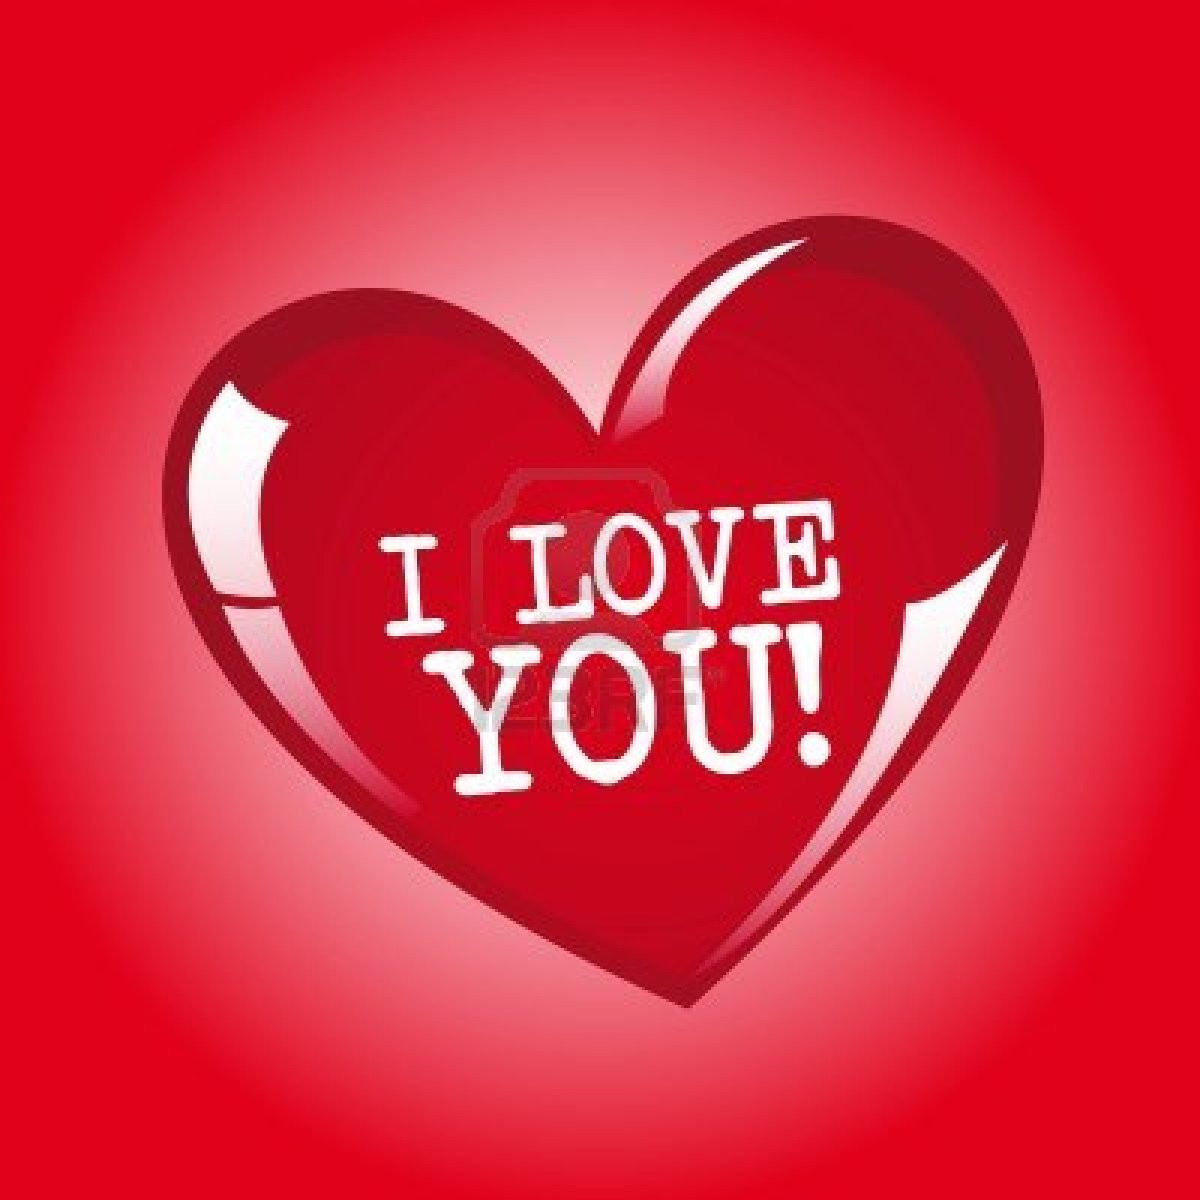 Red Heart with Love Inspirational I Luv U Hearts Of Red Heart with Love Fresh Love Heart Impremedia